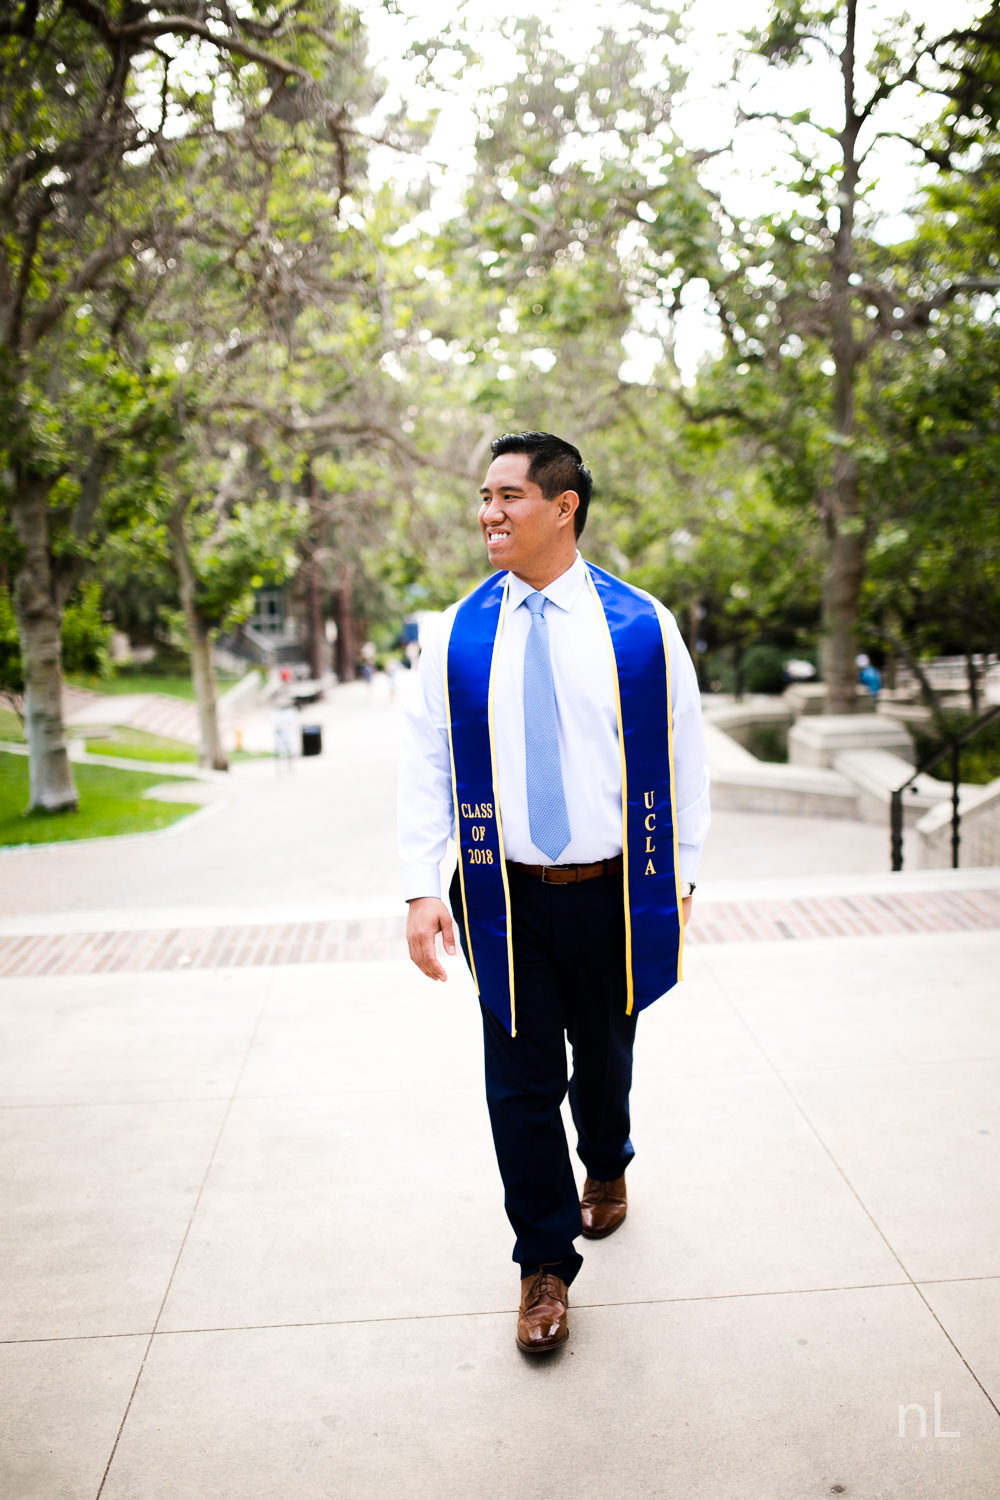 los-angeles-ucla-senior-graduation-portraits-6876.jpg